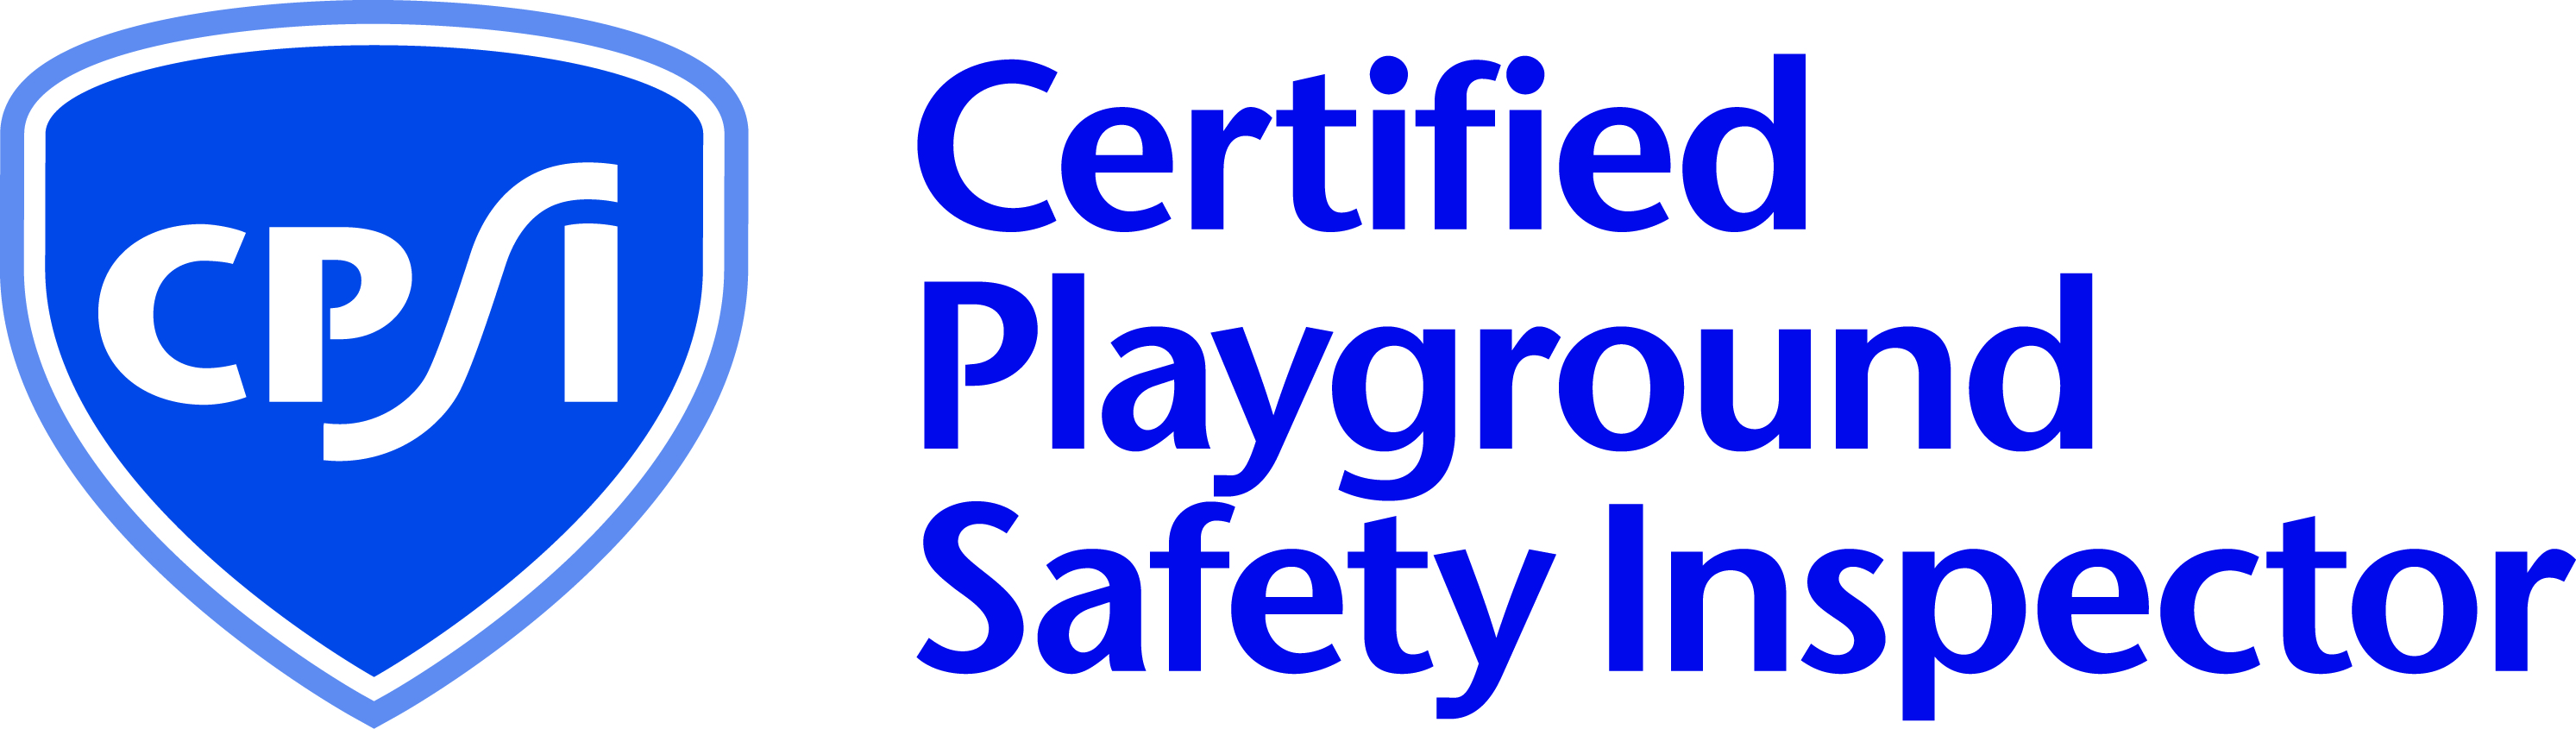 2018 Certified Playground Safety Inspector Course & Exam - Cranberry